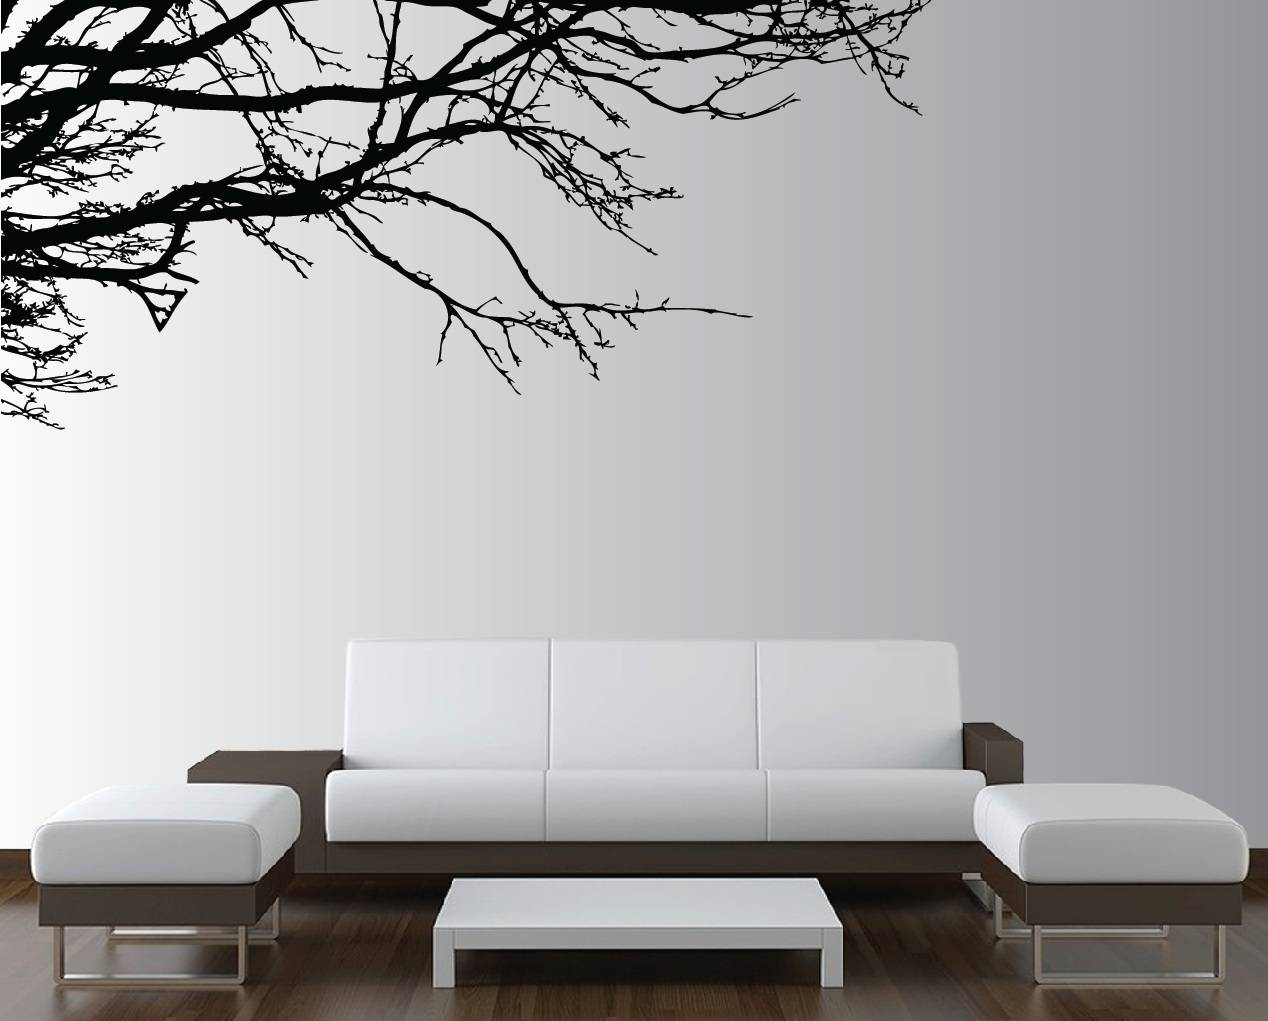 Large Wall Tree Nursery Decal Oak Branches #1130 – Innovativestencils Pertaining To Recent Oak Tree Wall Art (View 14 of 30)